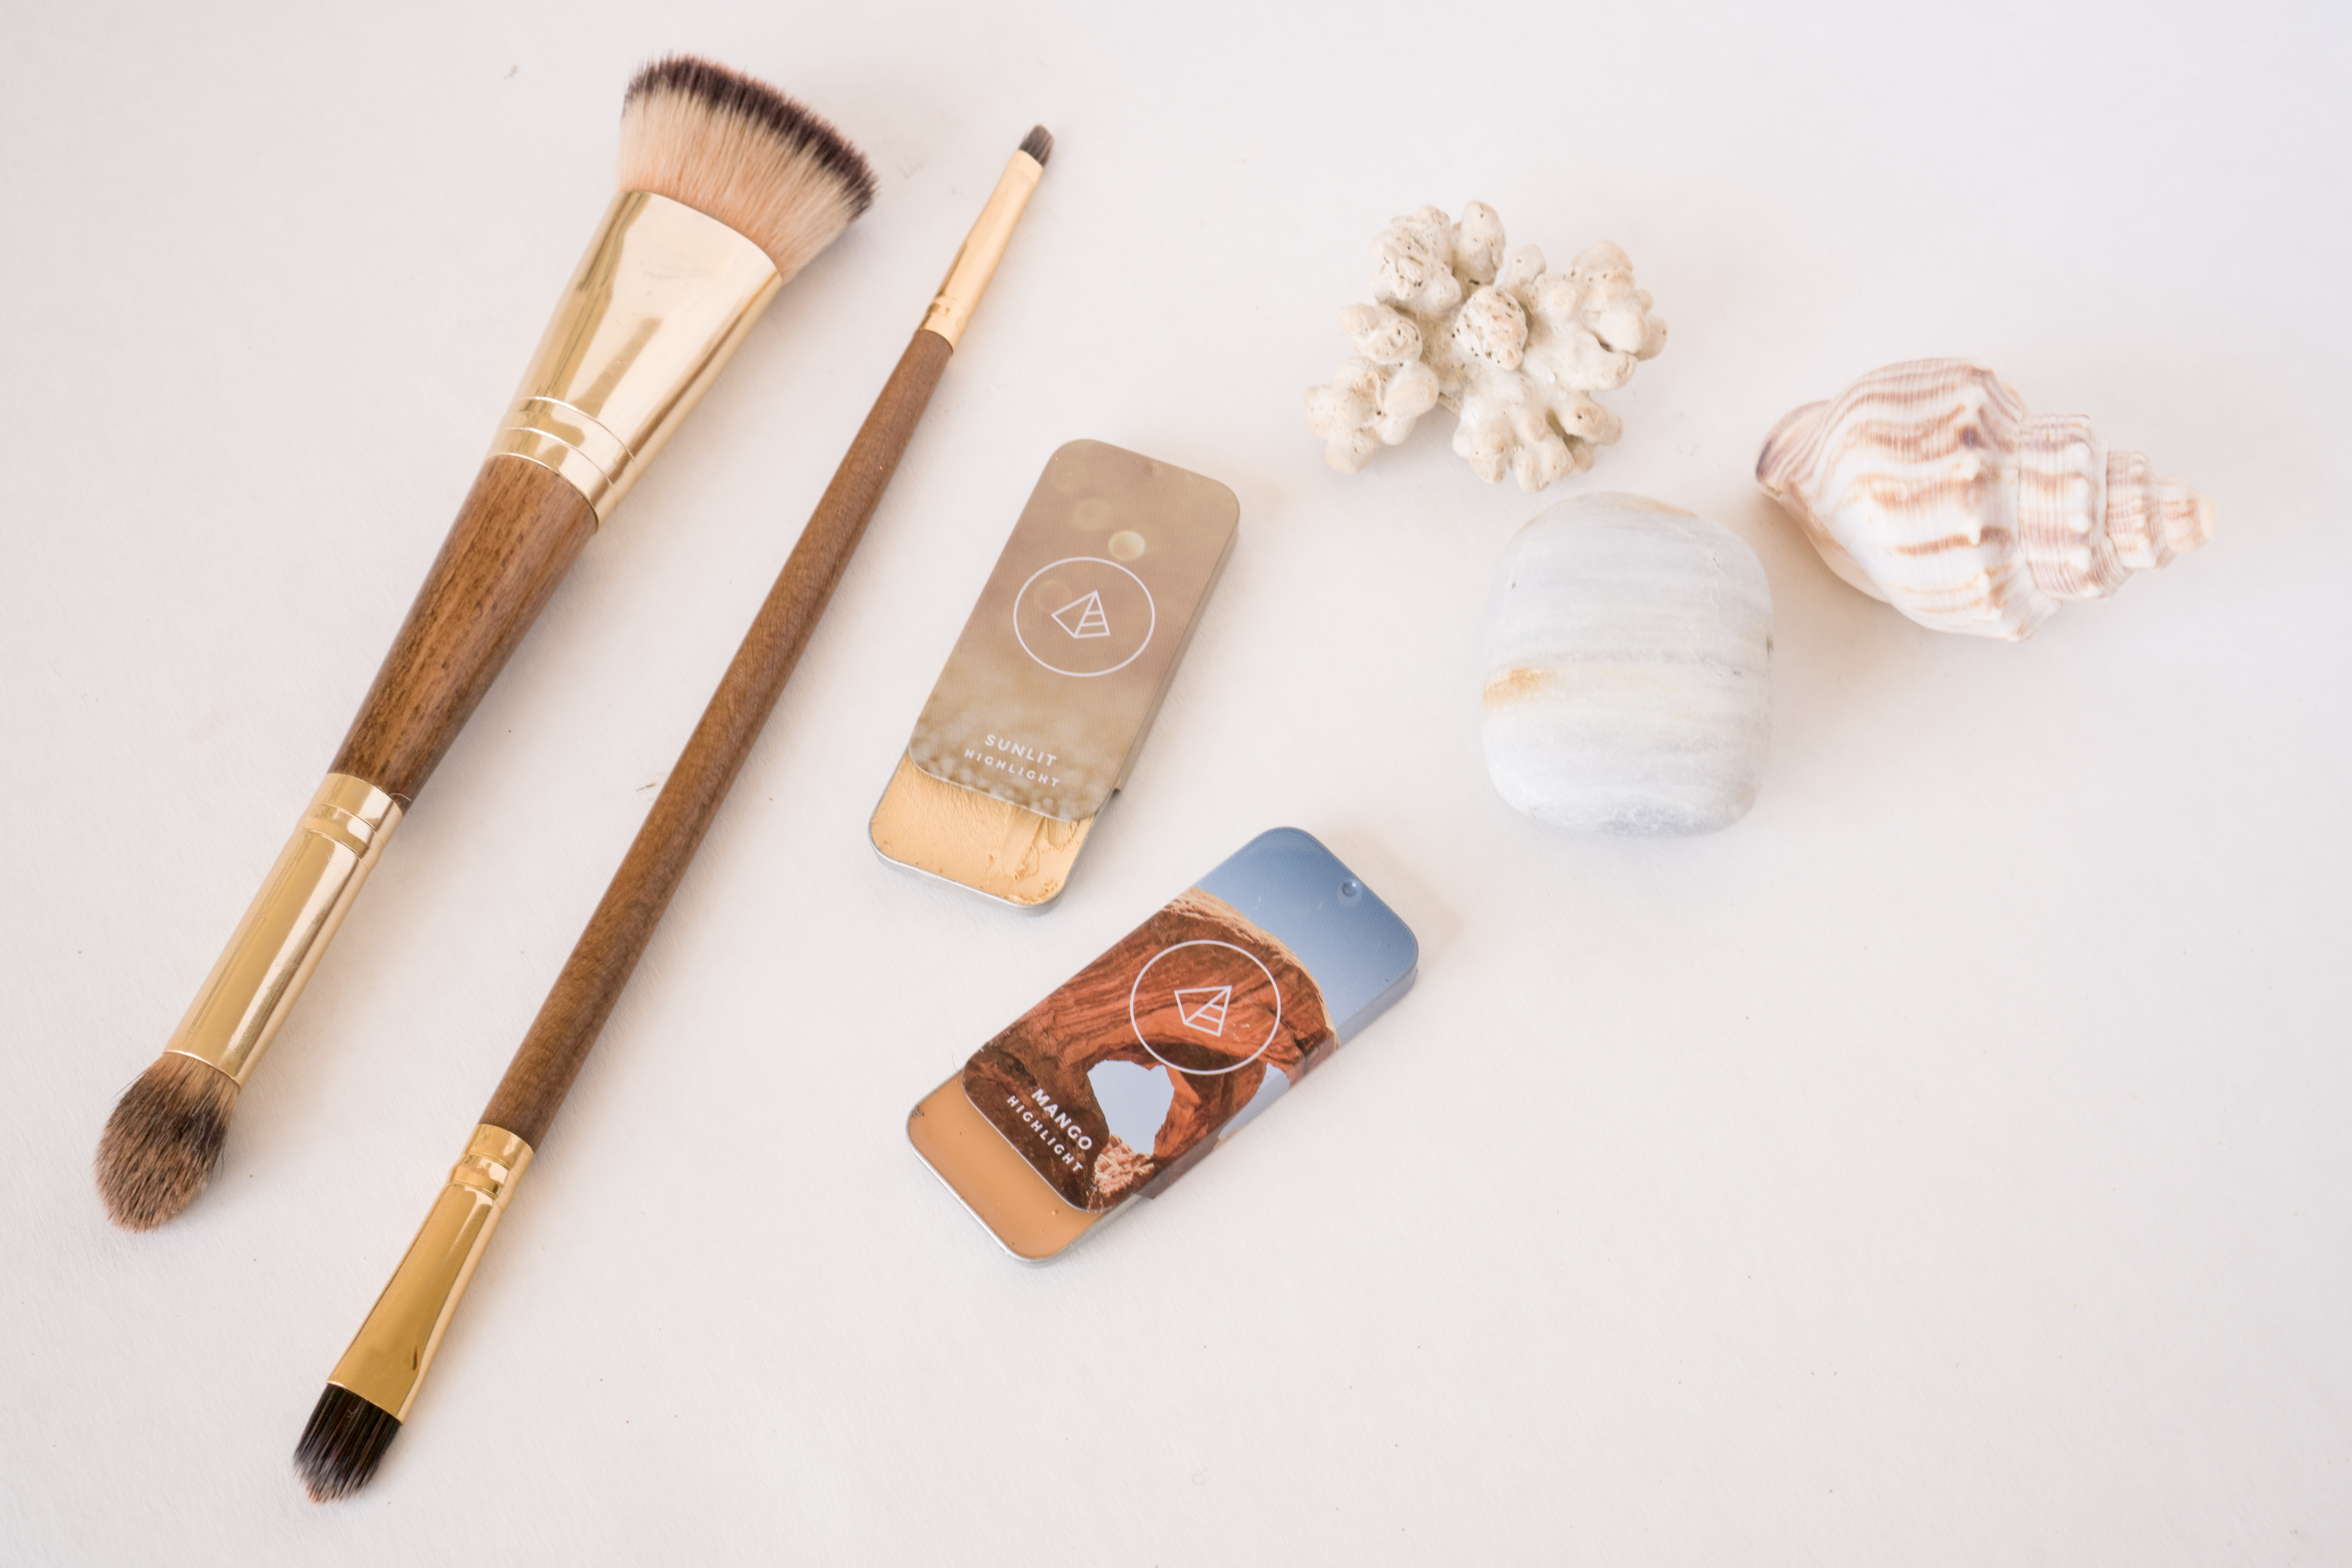 How to Apply Concealer with Maskcara Beauty Girl at www.maskcarabeautygirl.com